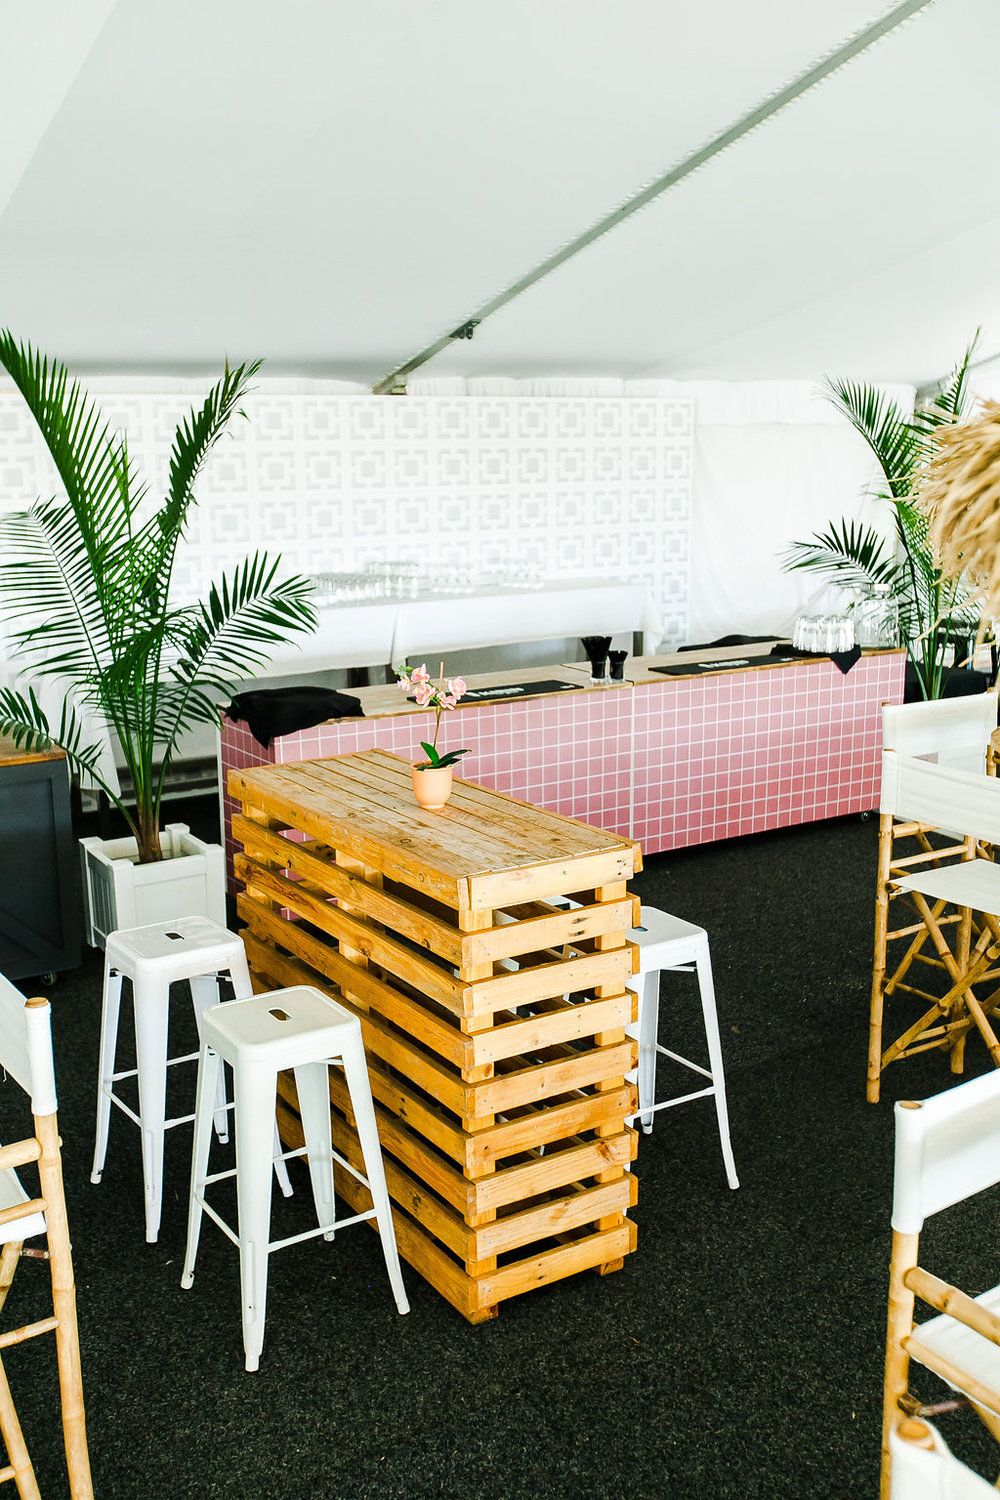 Corporate event styling doomben racecourse brisbane racing club event furniture hire by hampton event hire photo by kate robinson photography